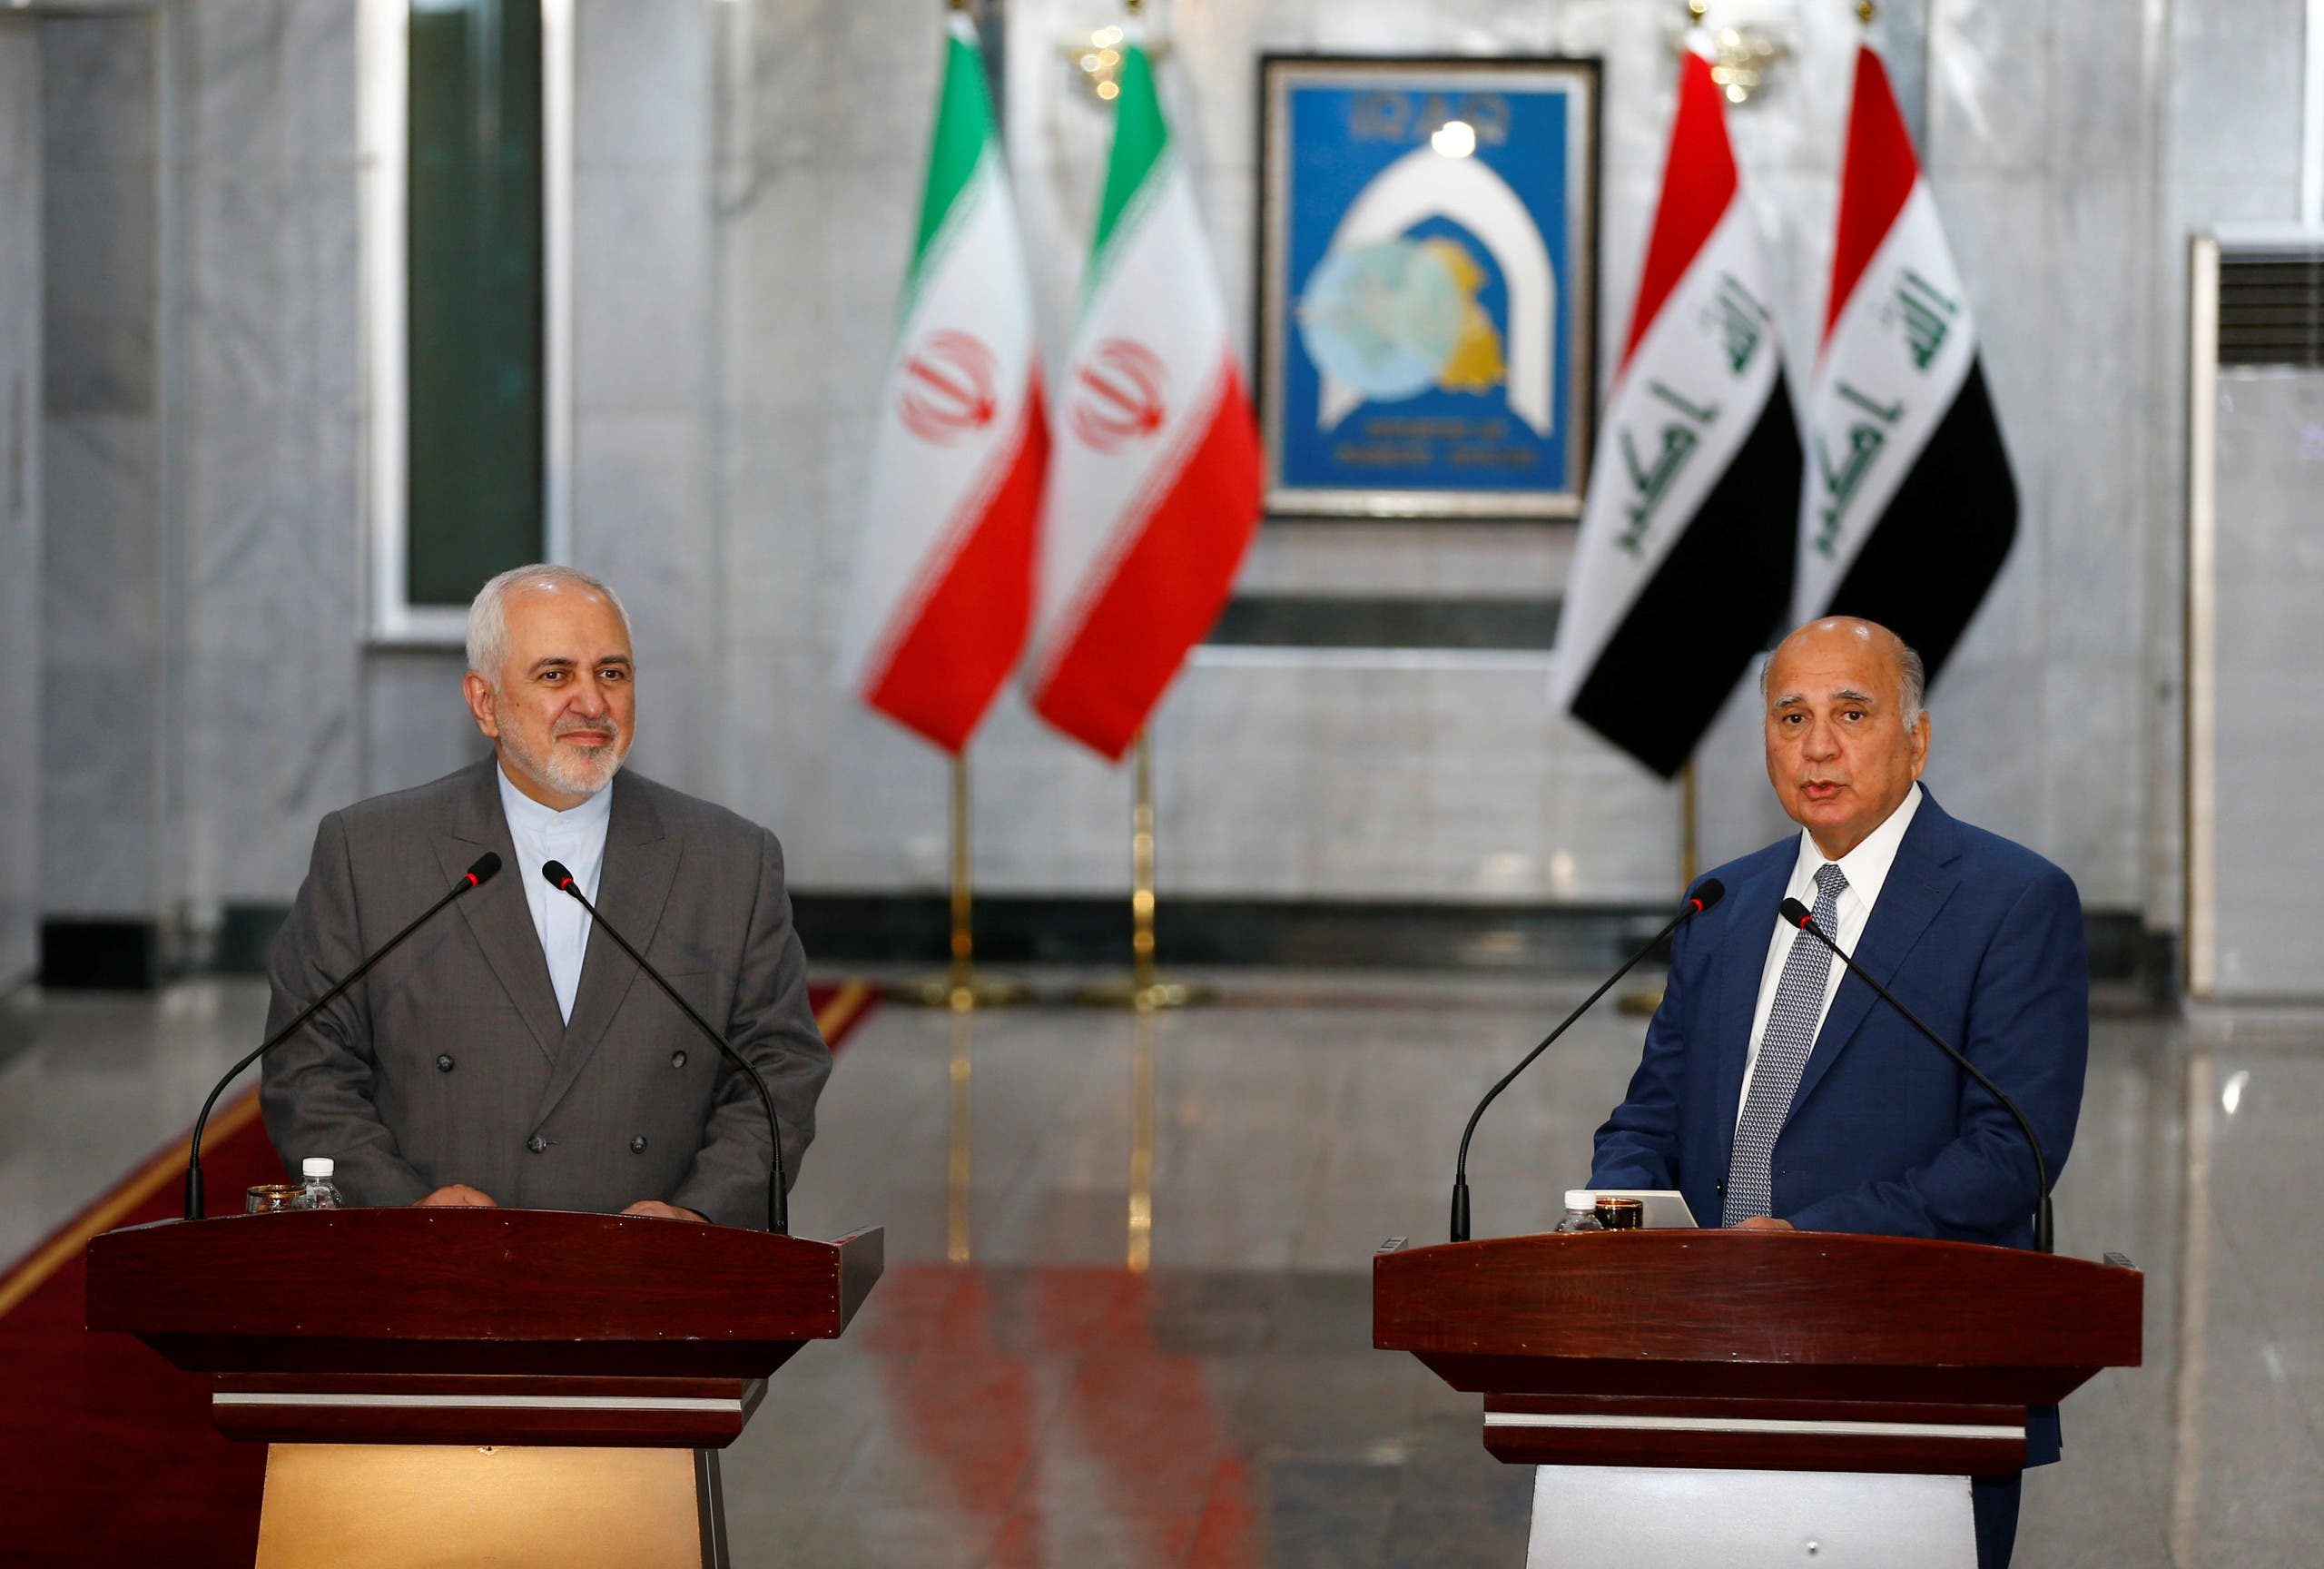 Iran's Foreign Minister Mohammad Javad Zarif with Iraqi Foreign Affairs Minister Fuad Hussain in Baghdad, Iraq, July 19, 2020. (Reuters)